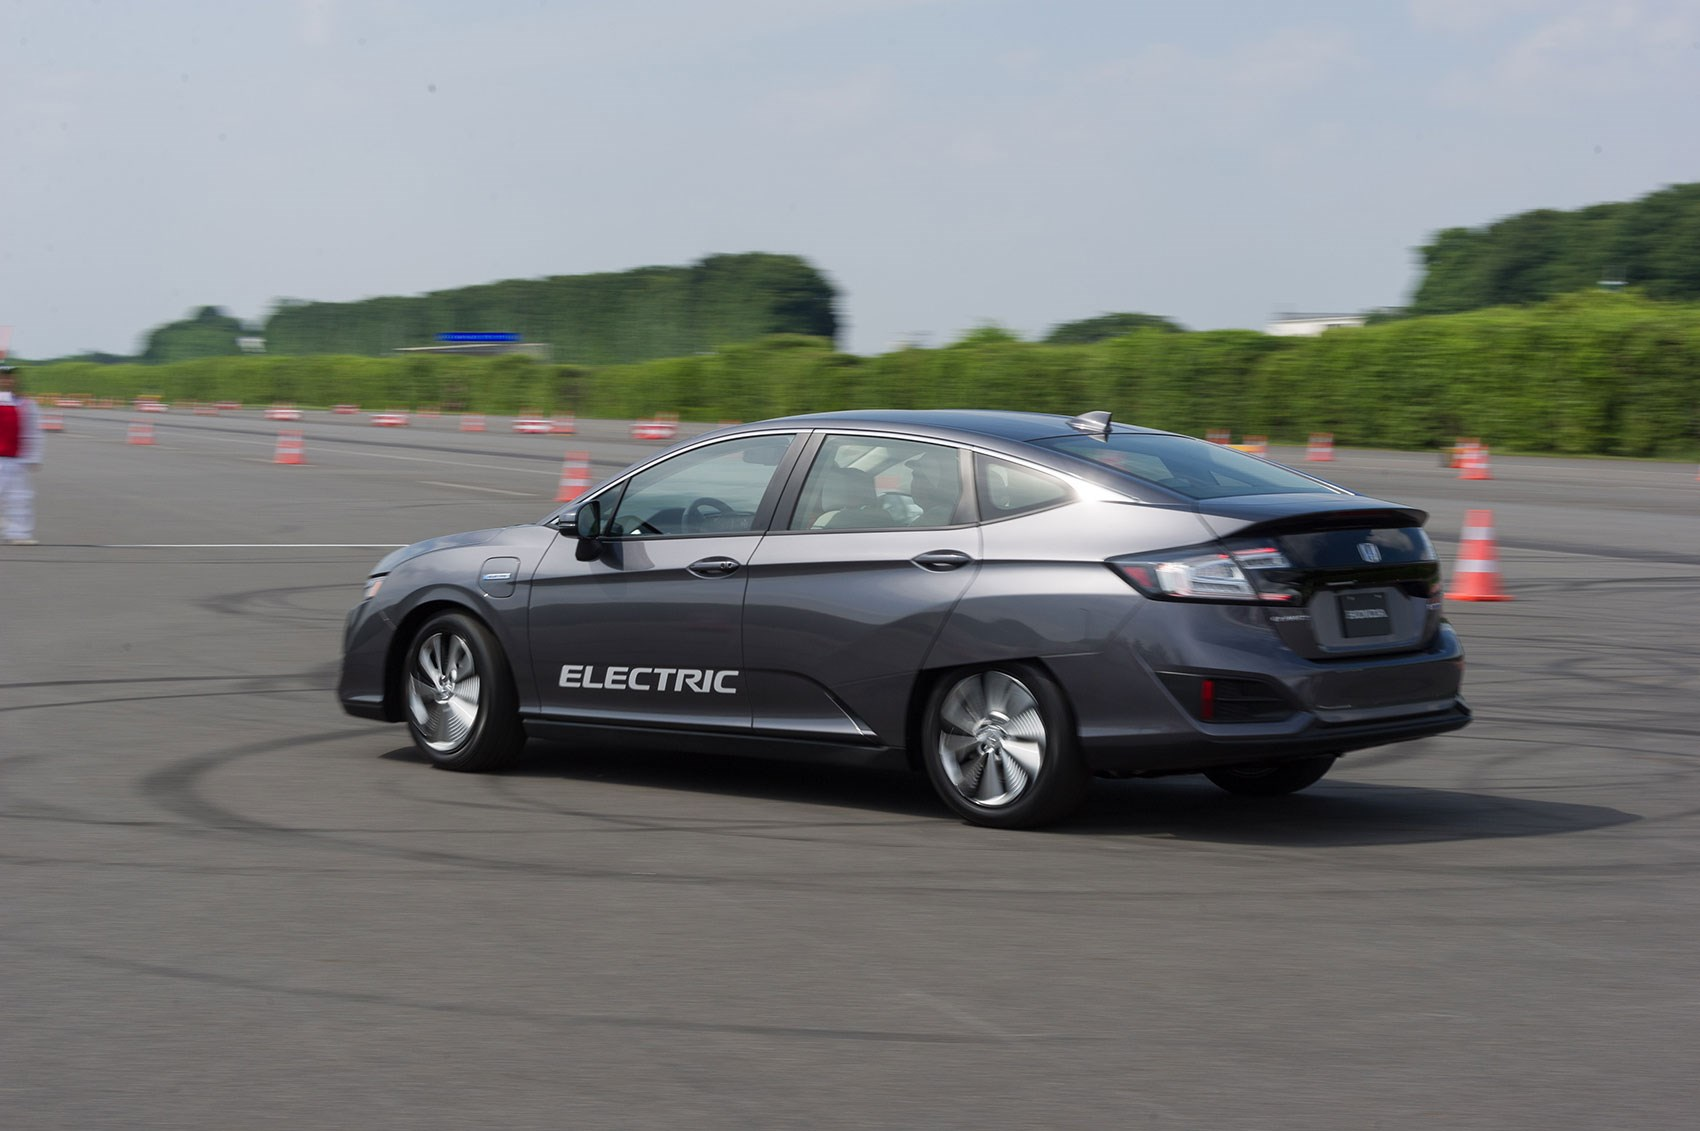 Honda Clarity BEV electric car